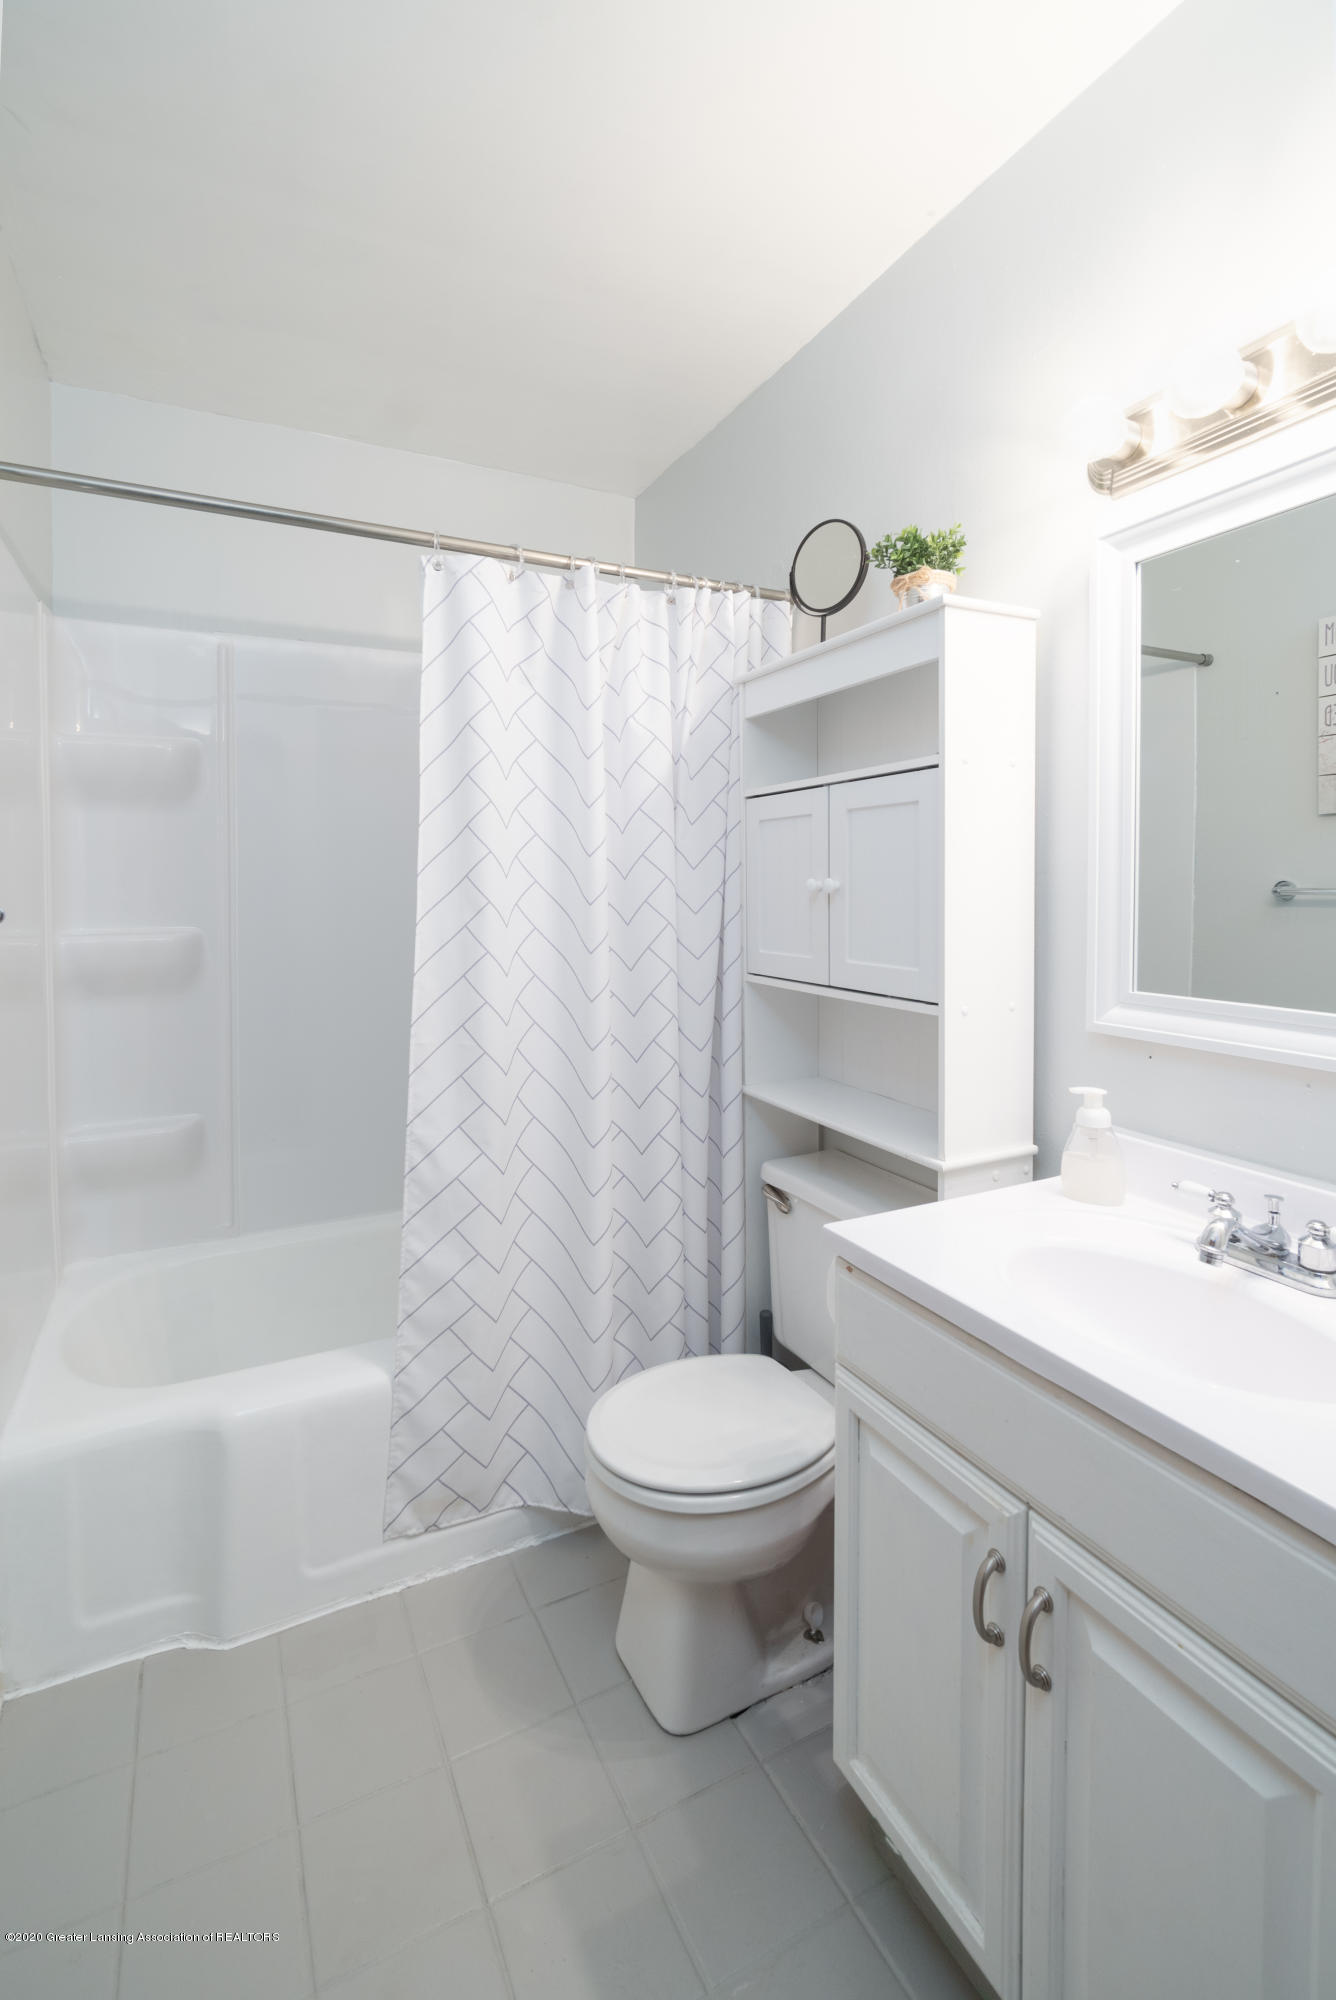 3535 Homewood Ave - bathroom - 7